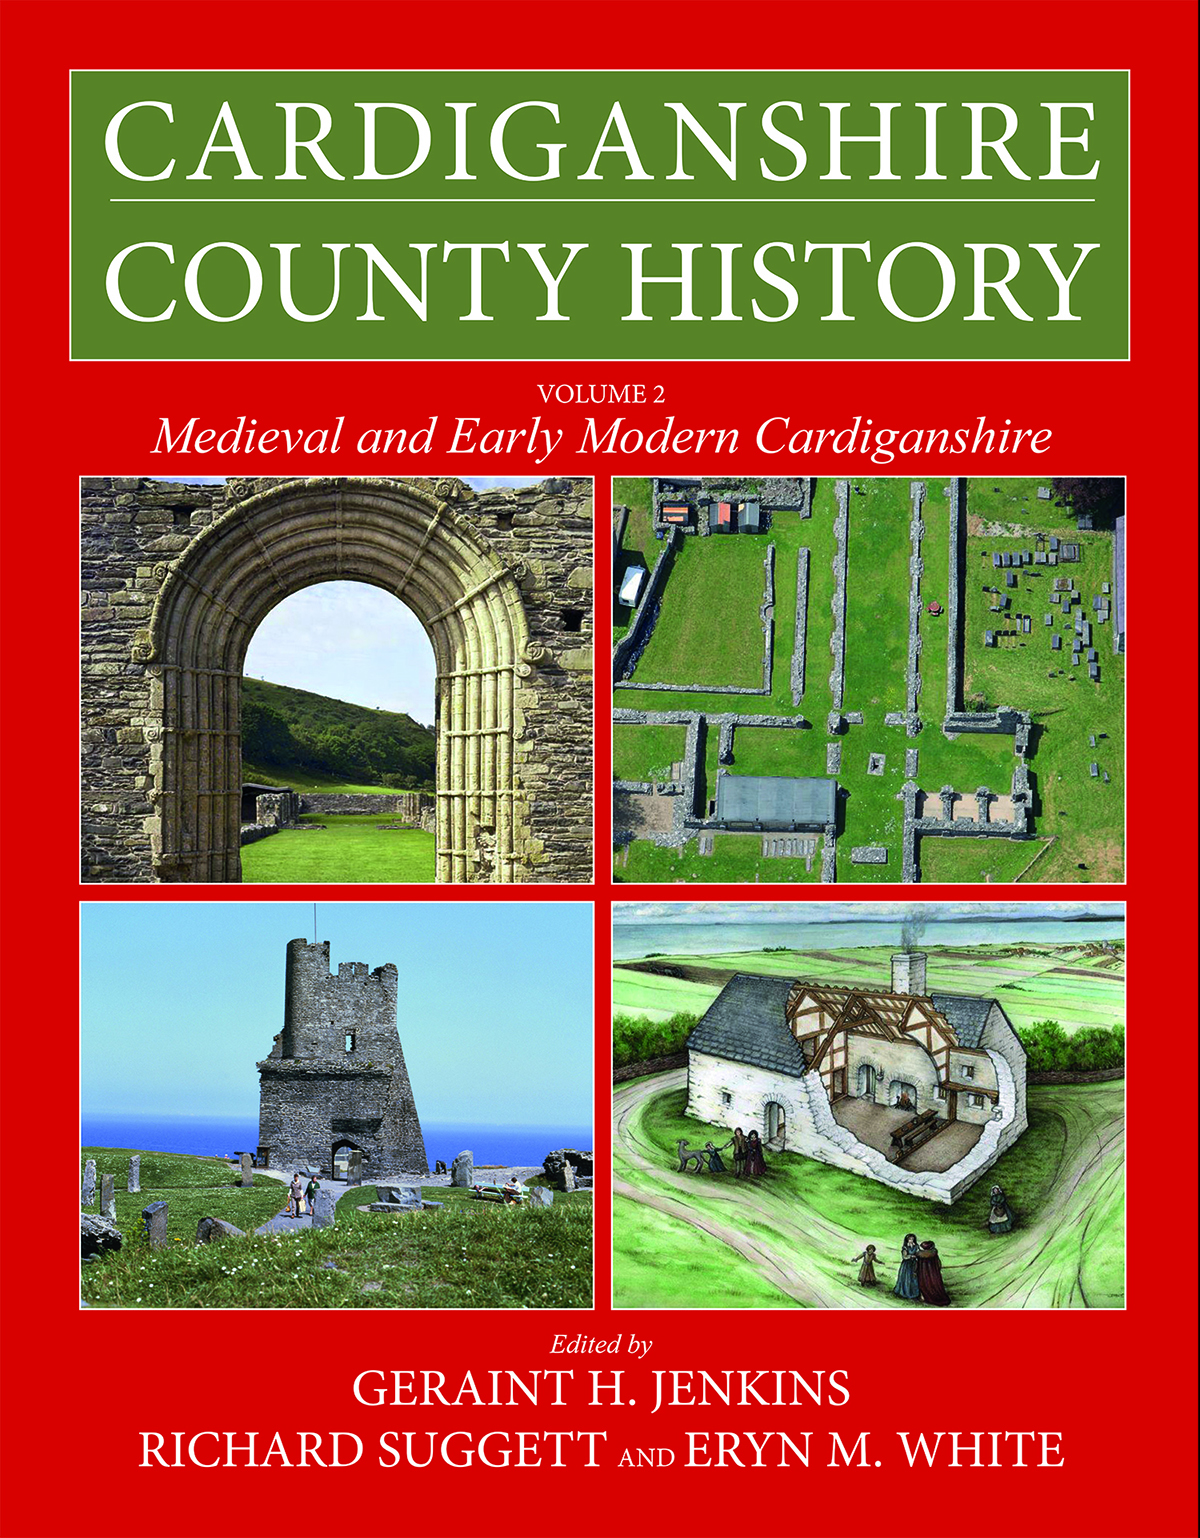 Cardiganshire County History Vol 2. Medieval and Early Modern Cardiganshire